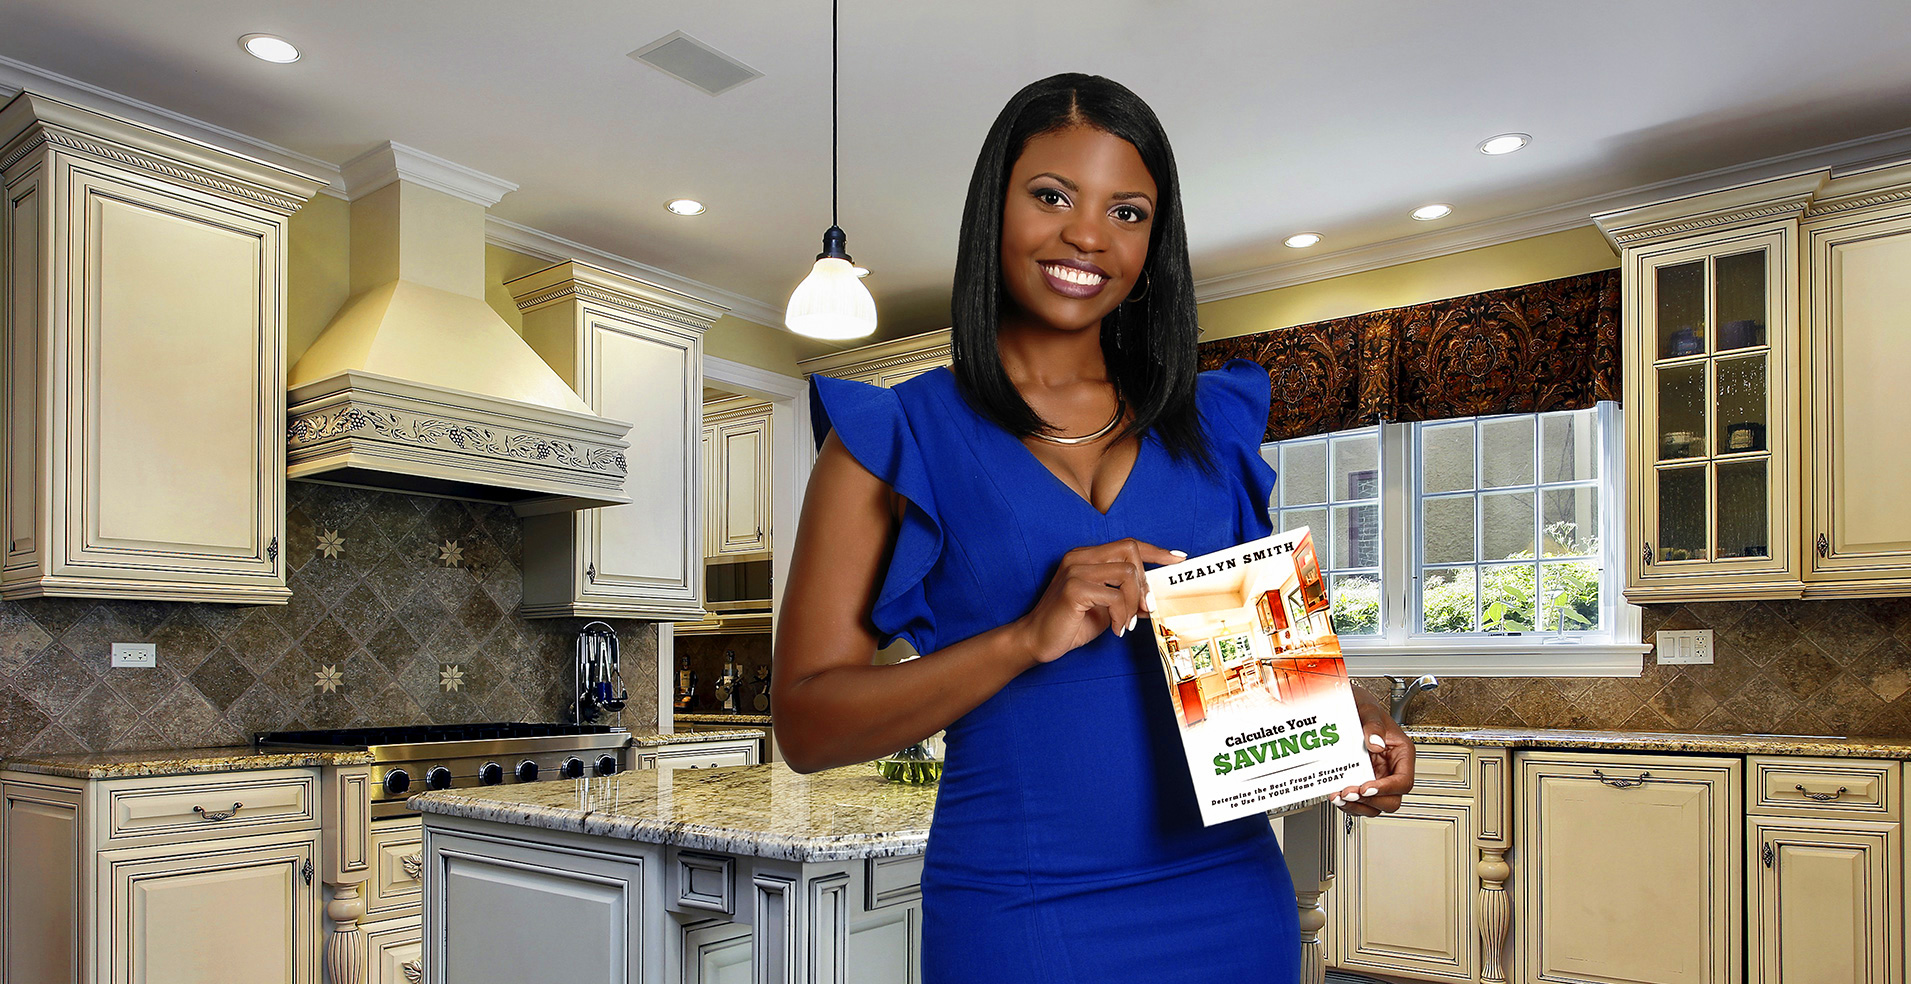 Image: Lizalyn Smith posing with her new book, Calculate Your Savings